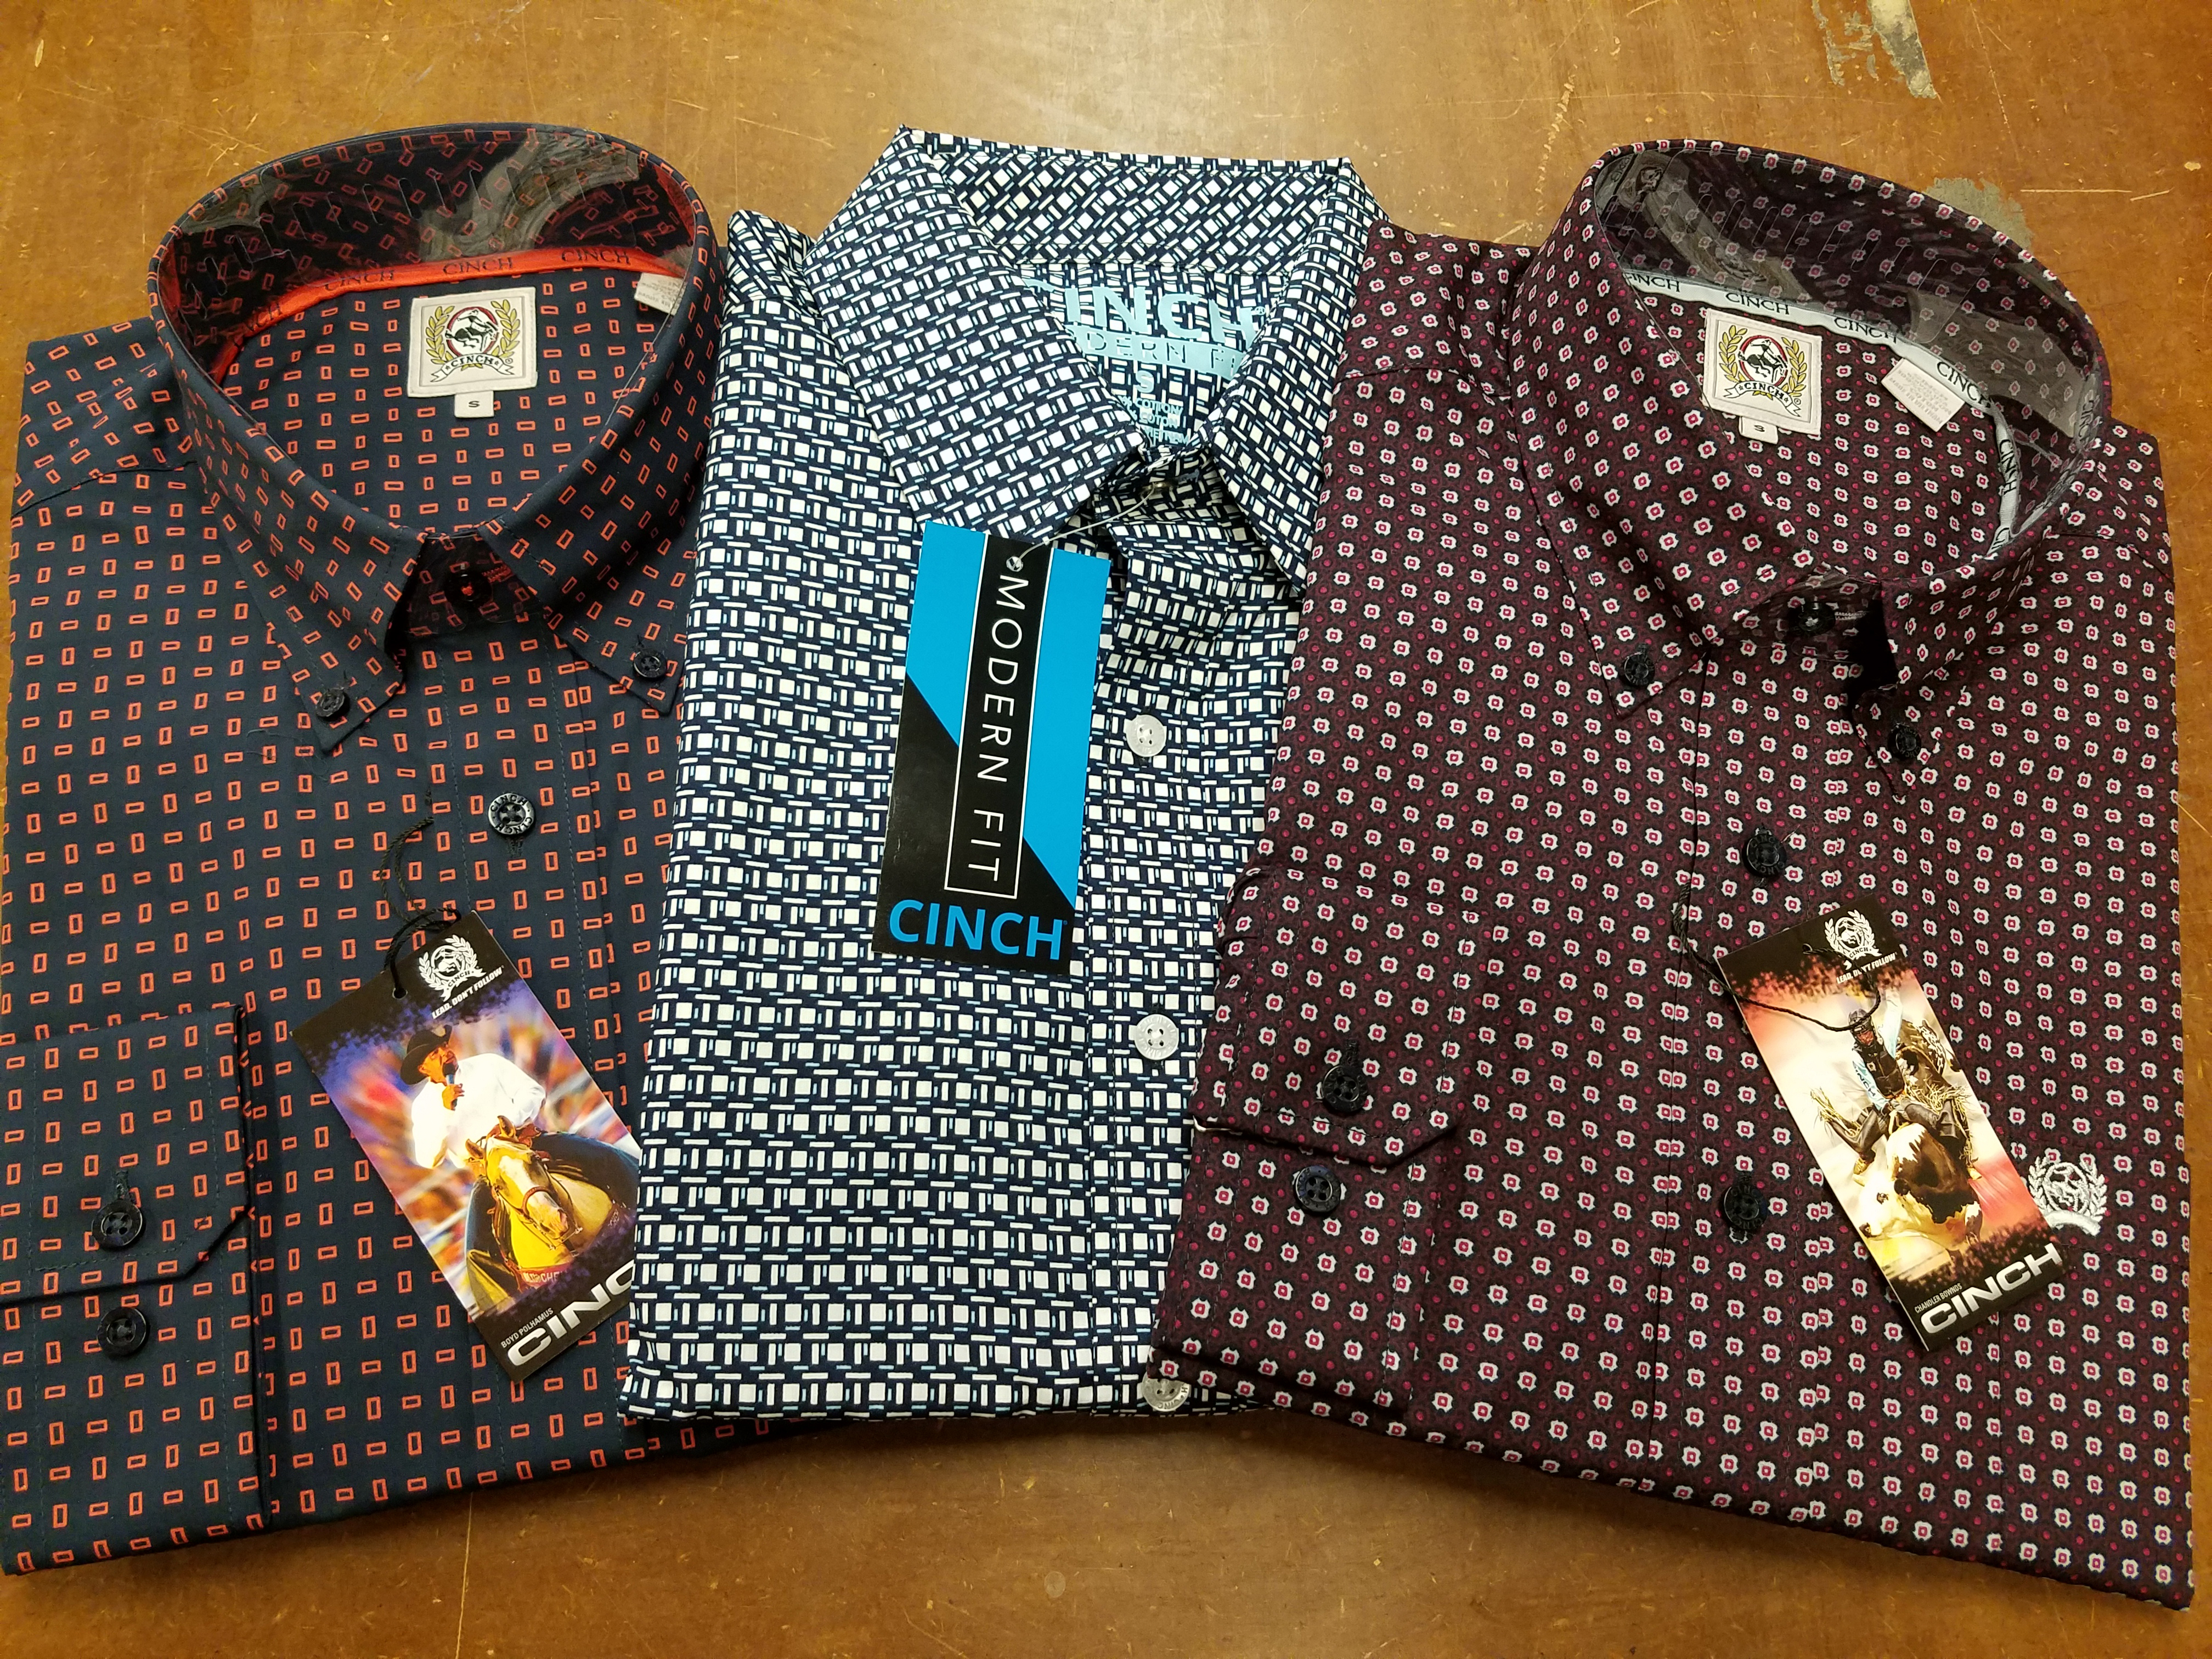 962835d0 Details about Brand New Cinch Shirts Sale Lot of 3 Size Small Long Sleeve  Dress Shirts